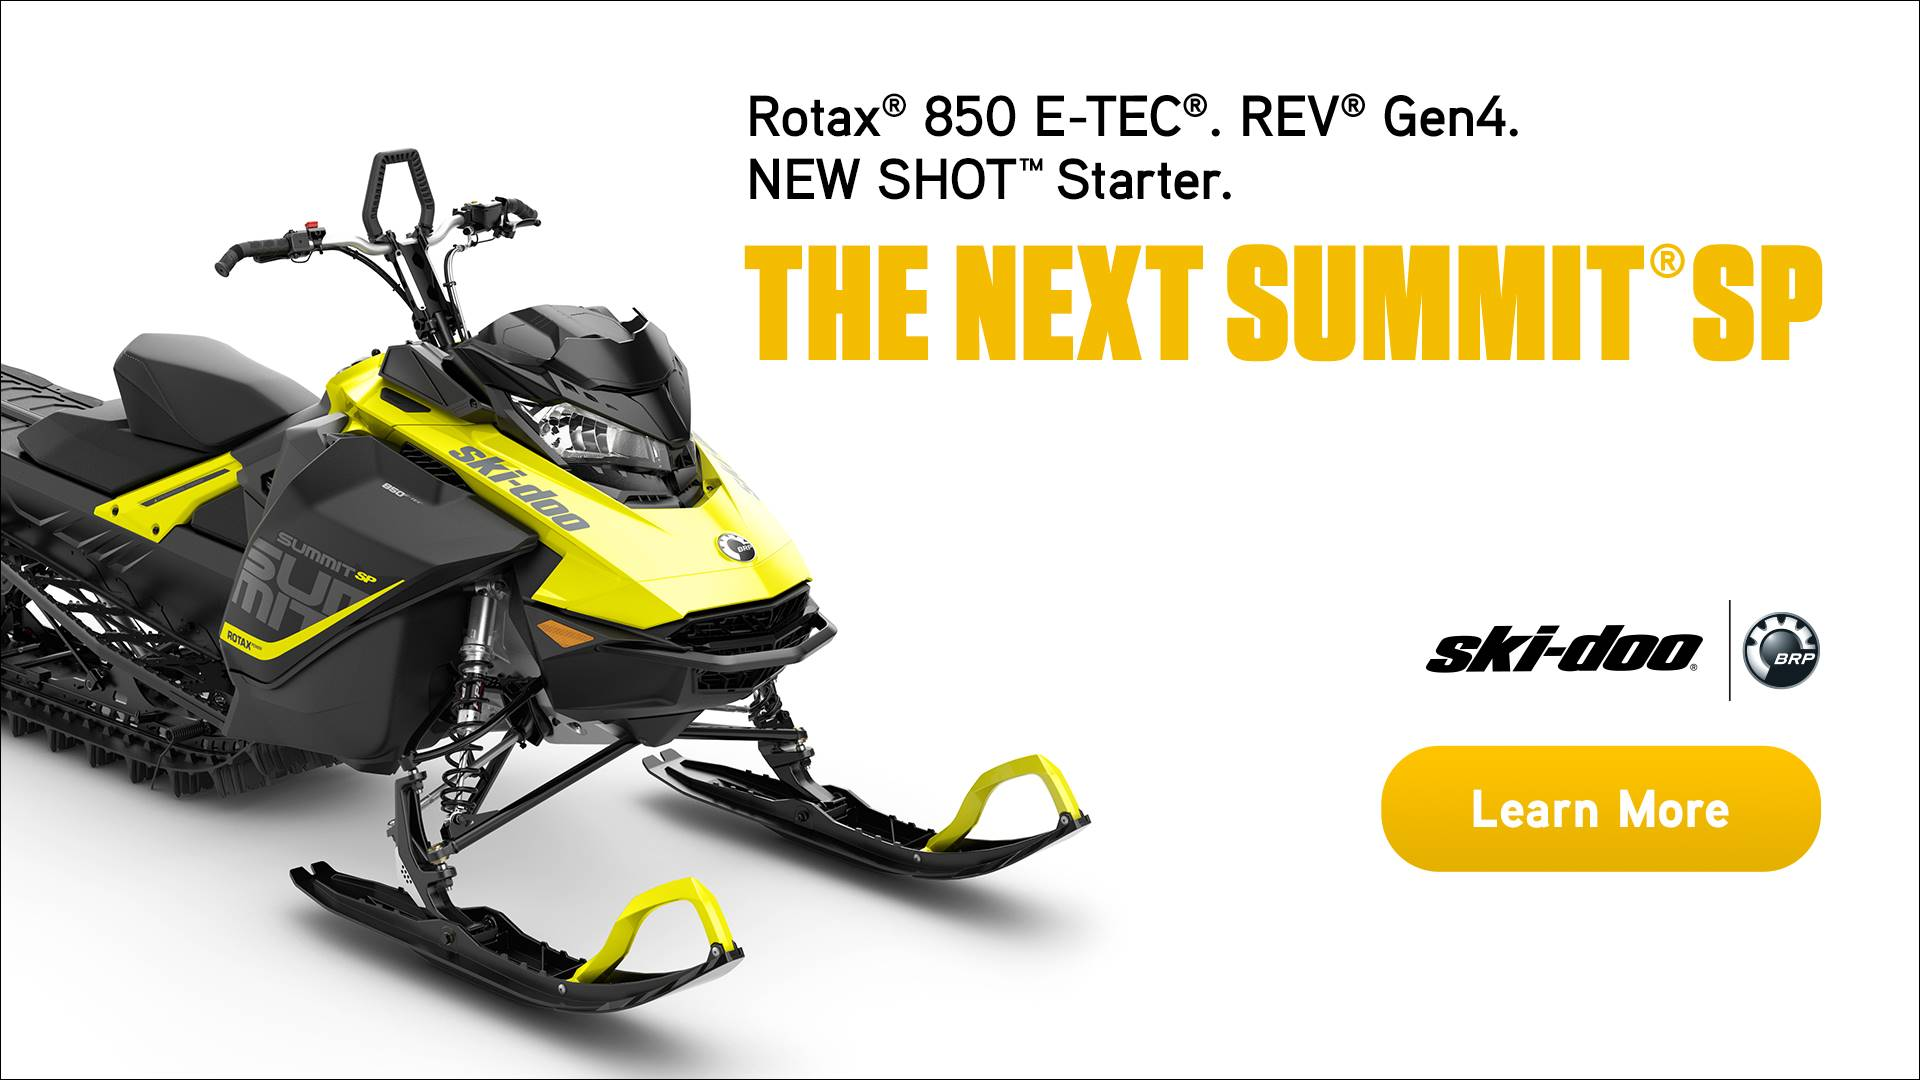 SKI-DOO THE NEXT SUMMIT SP